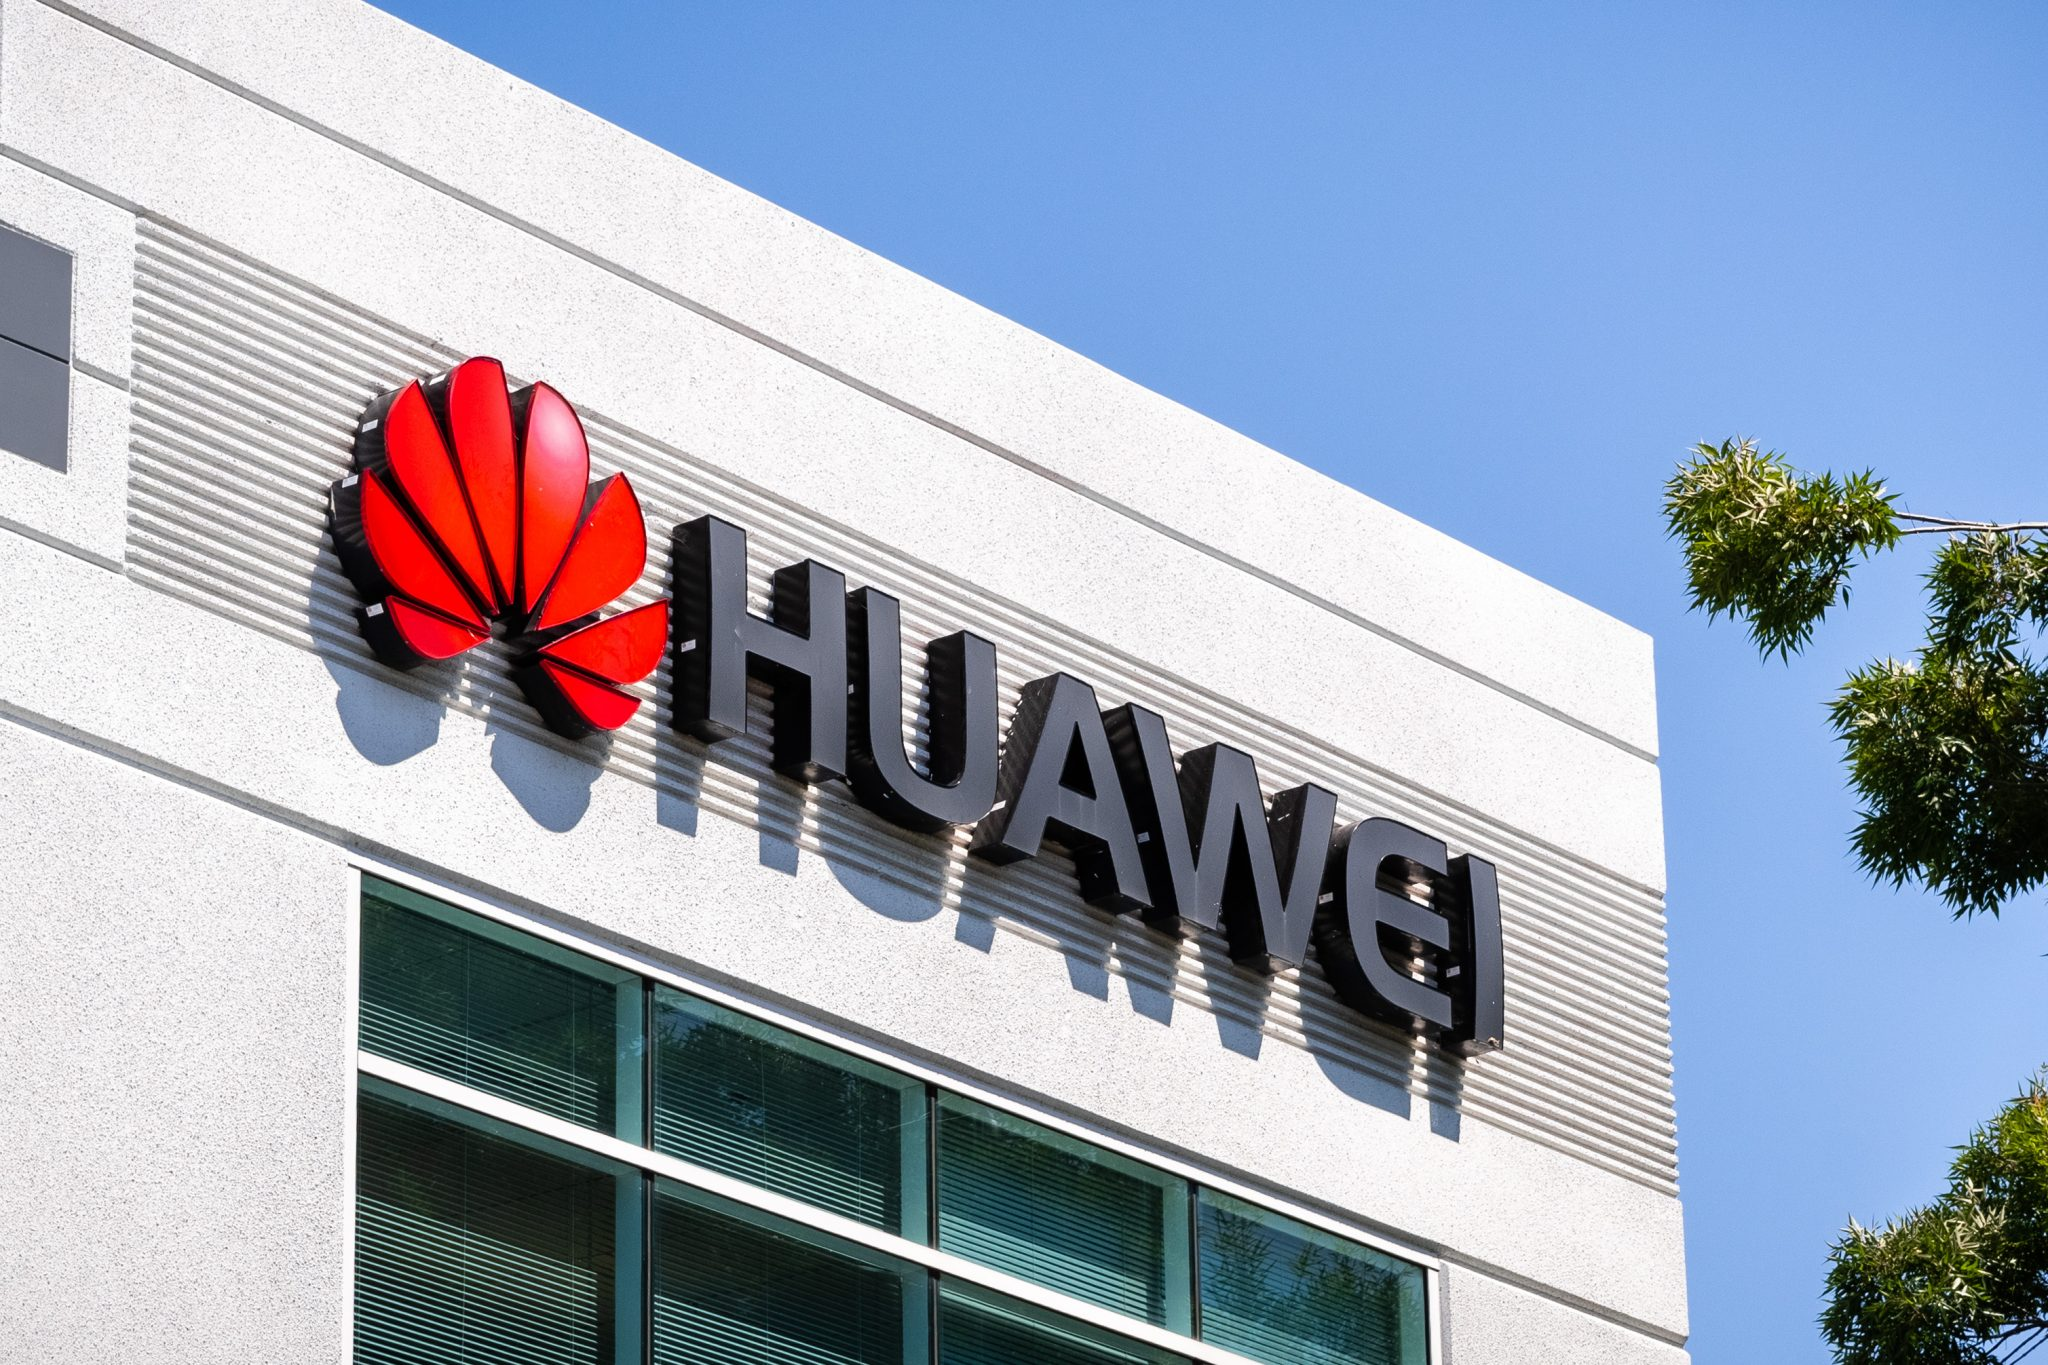 Huawei to acquire Xunlian Zhipay for its payments licence